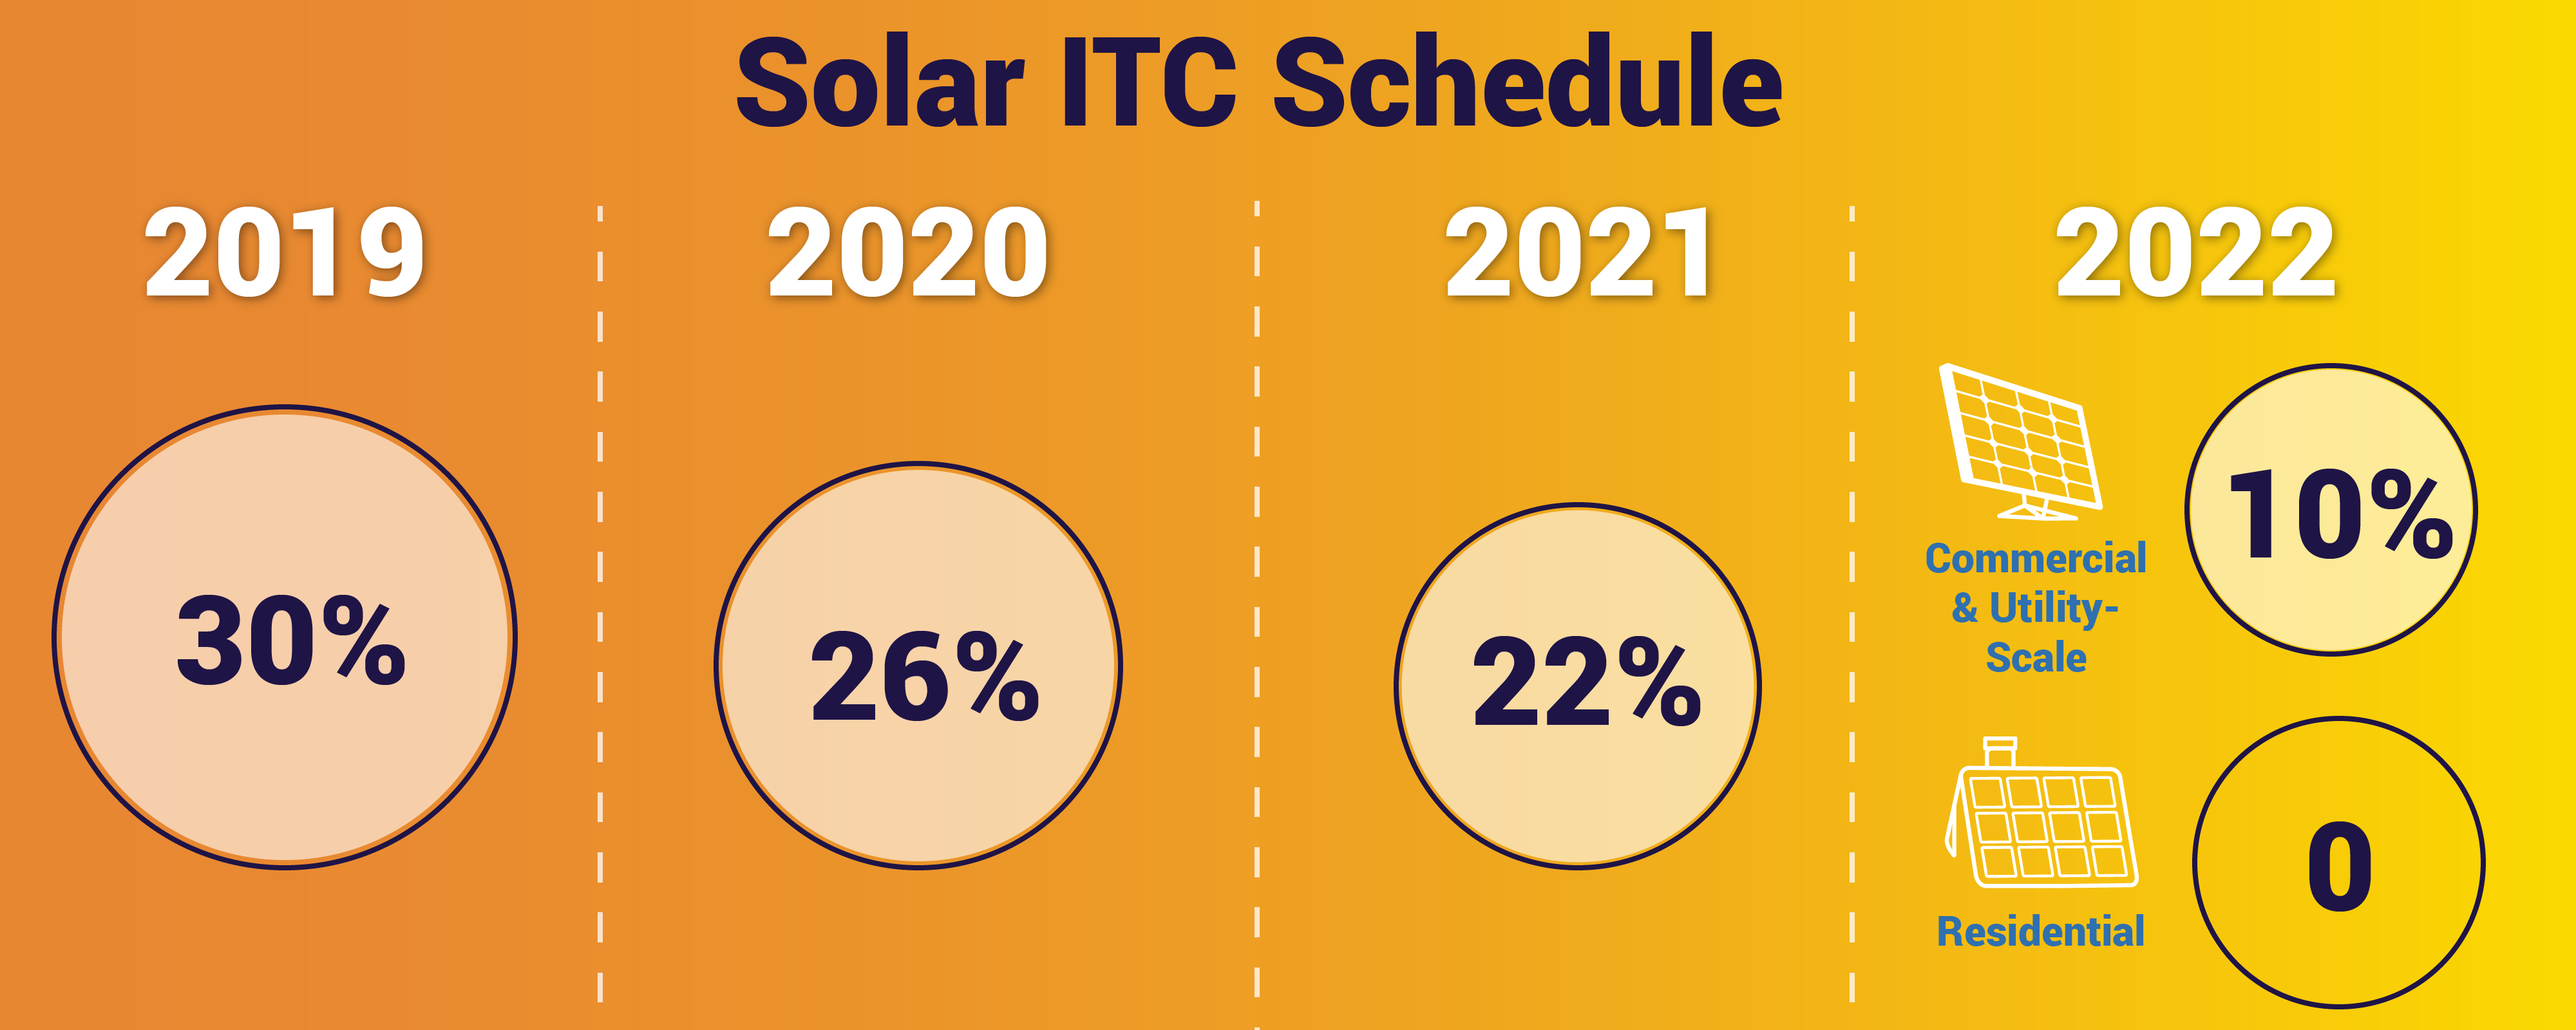 Solar Investment Tax Credit Itc Schedule 2019 2023